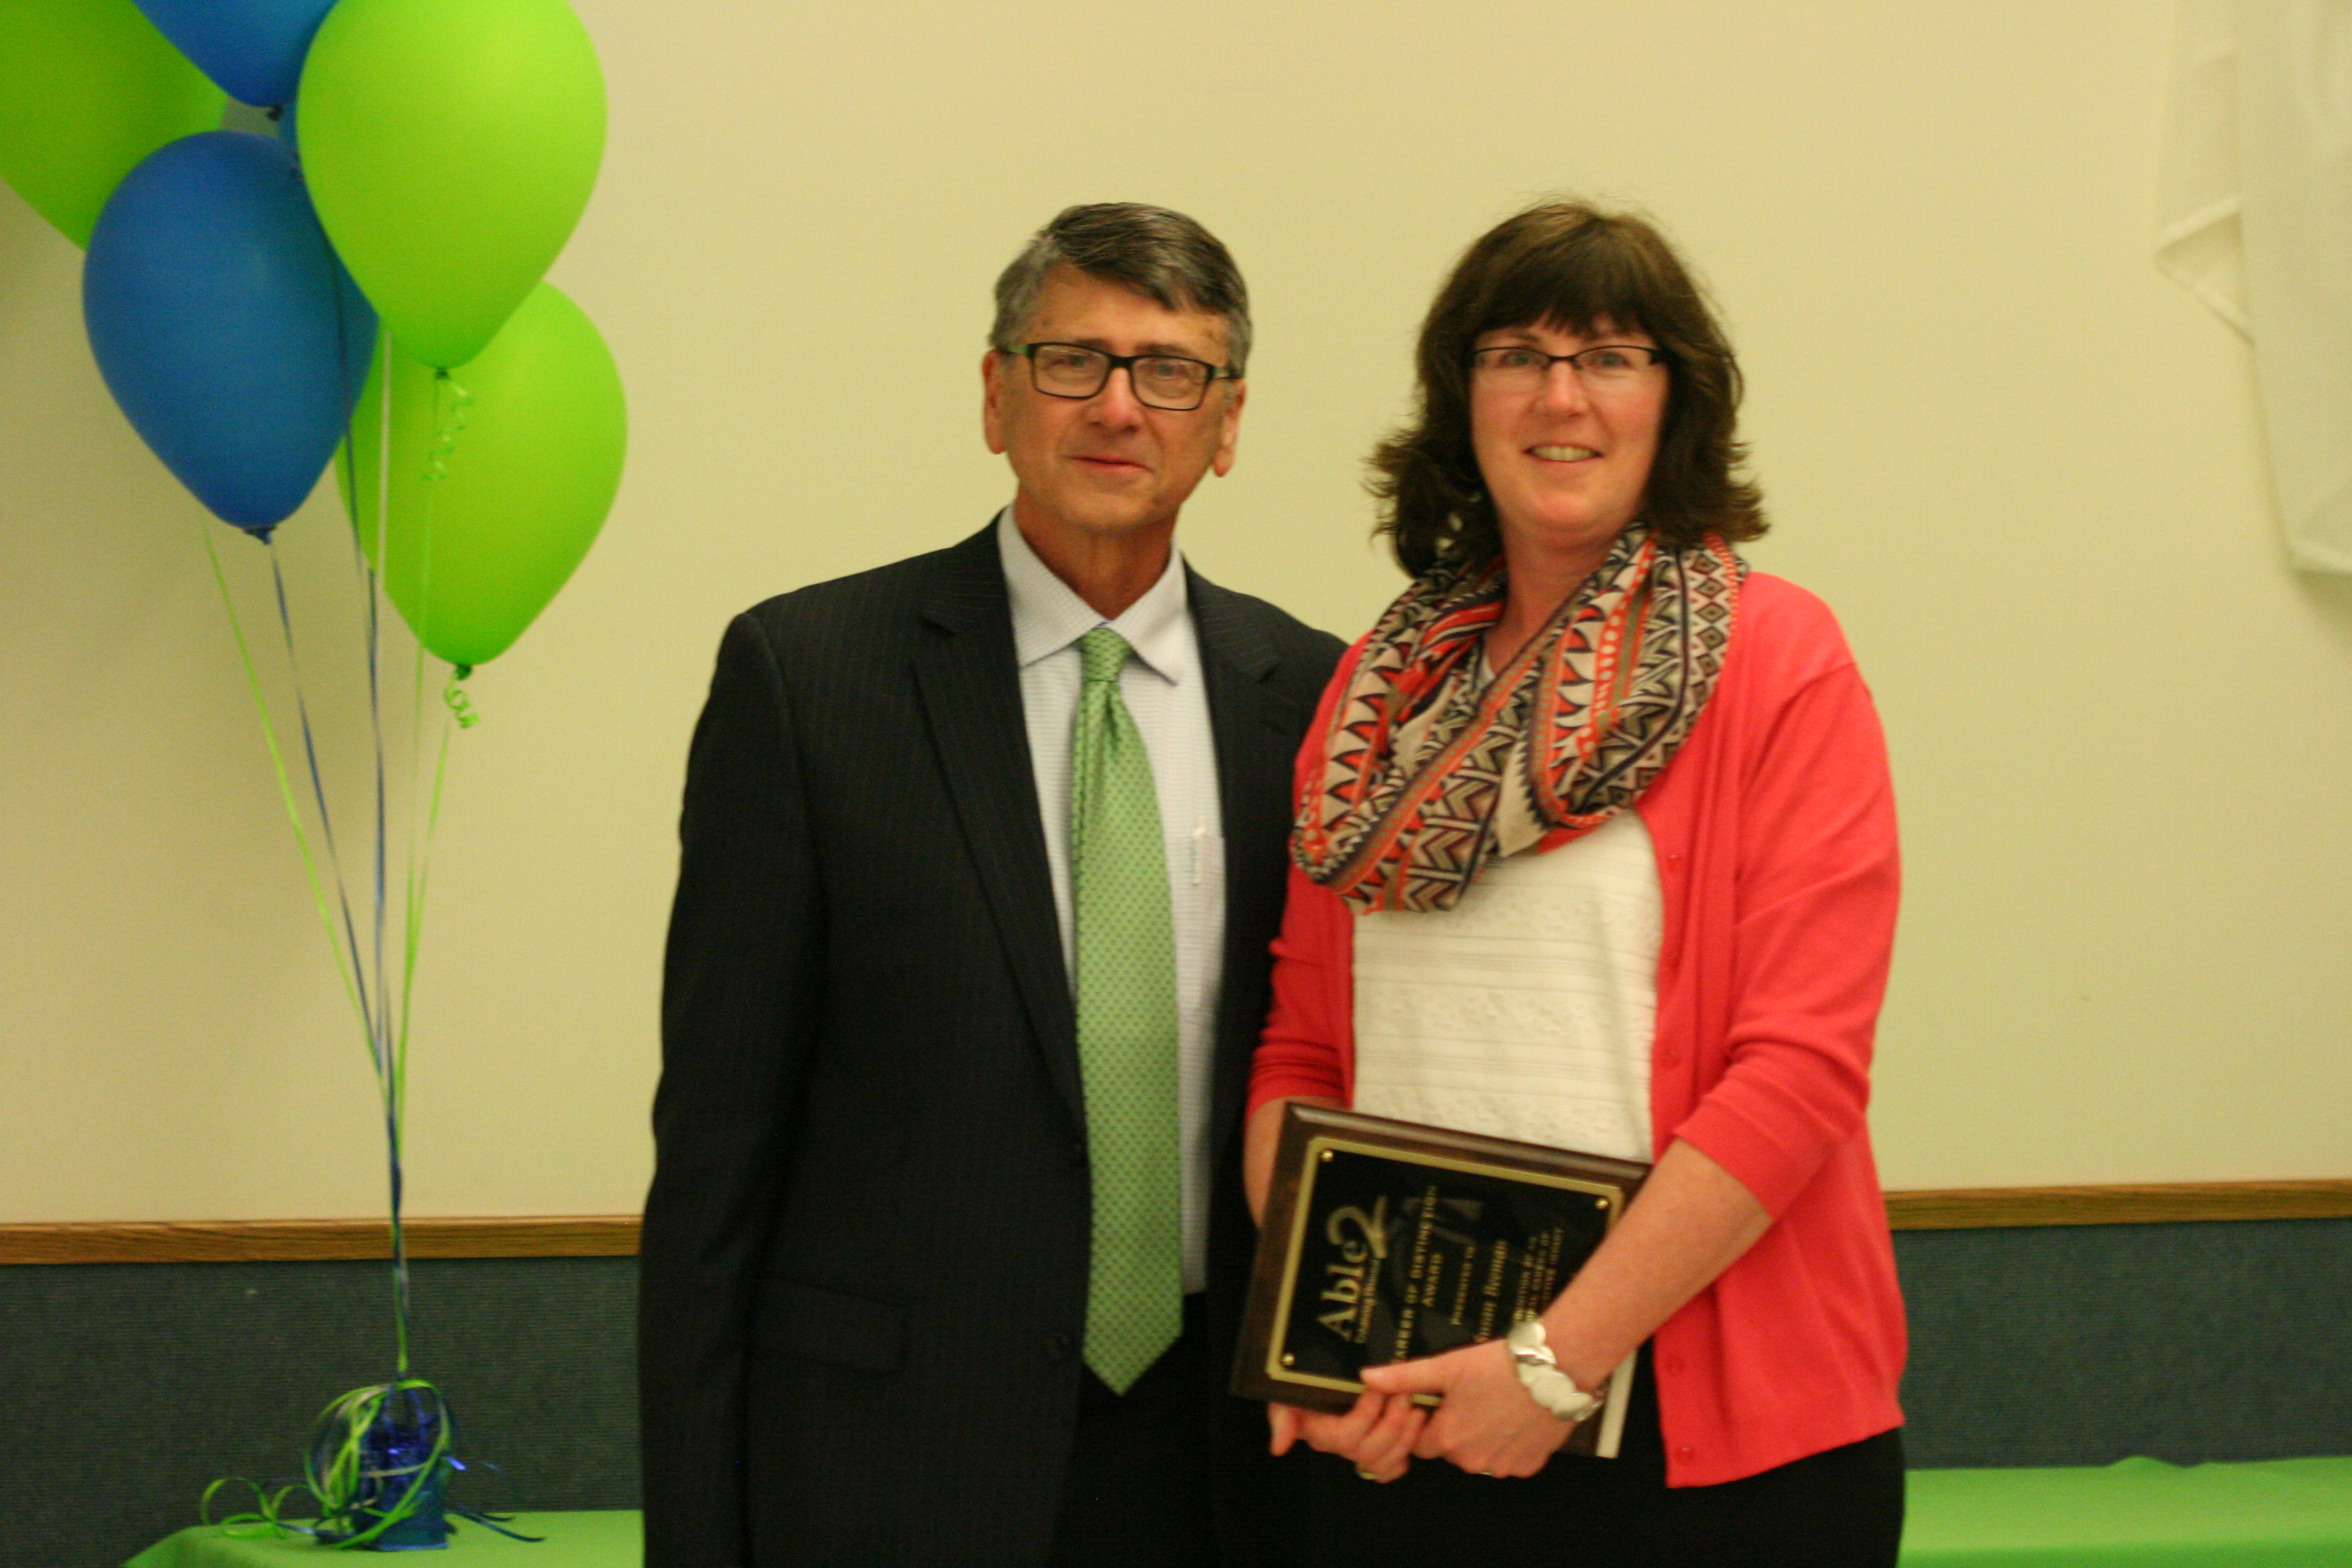 Sue Beeman, Career of Distinction Award Recipient